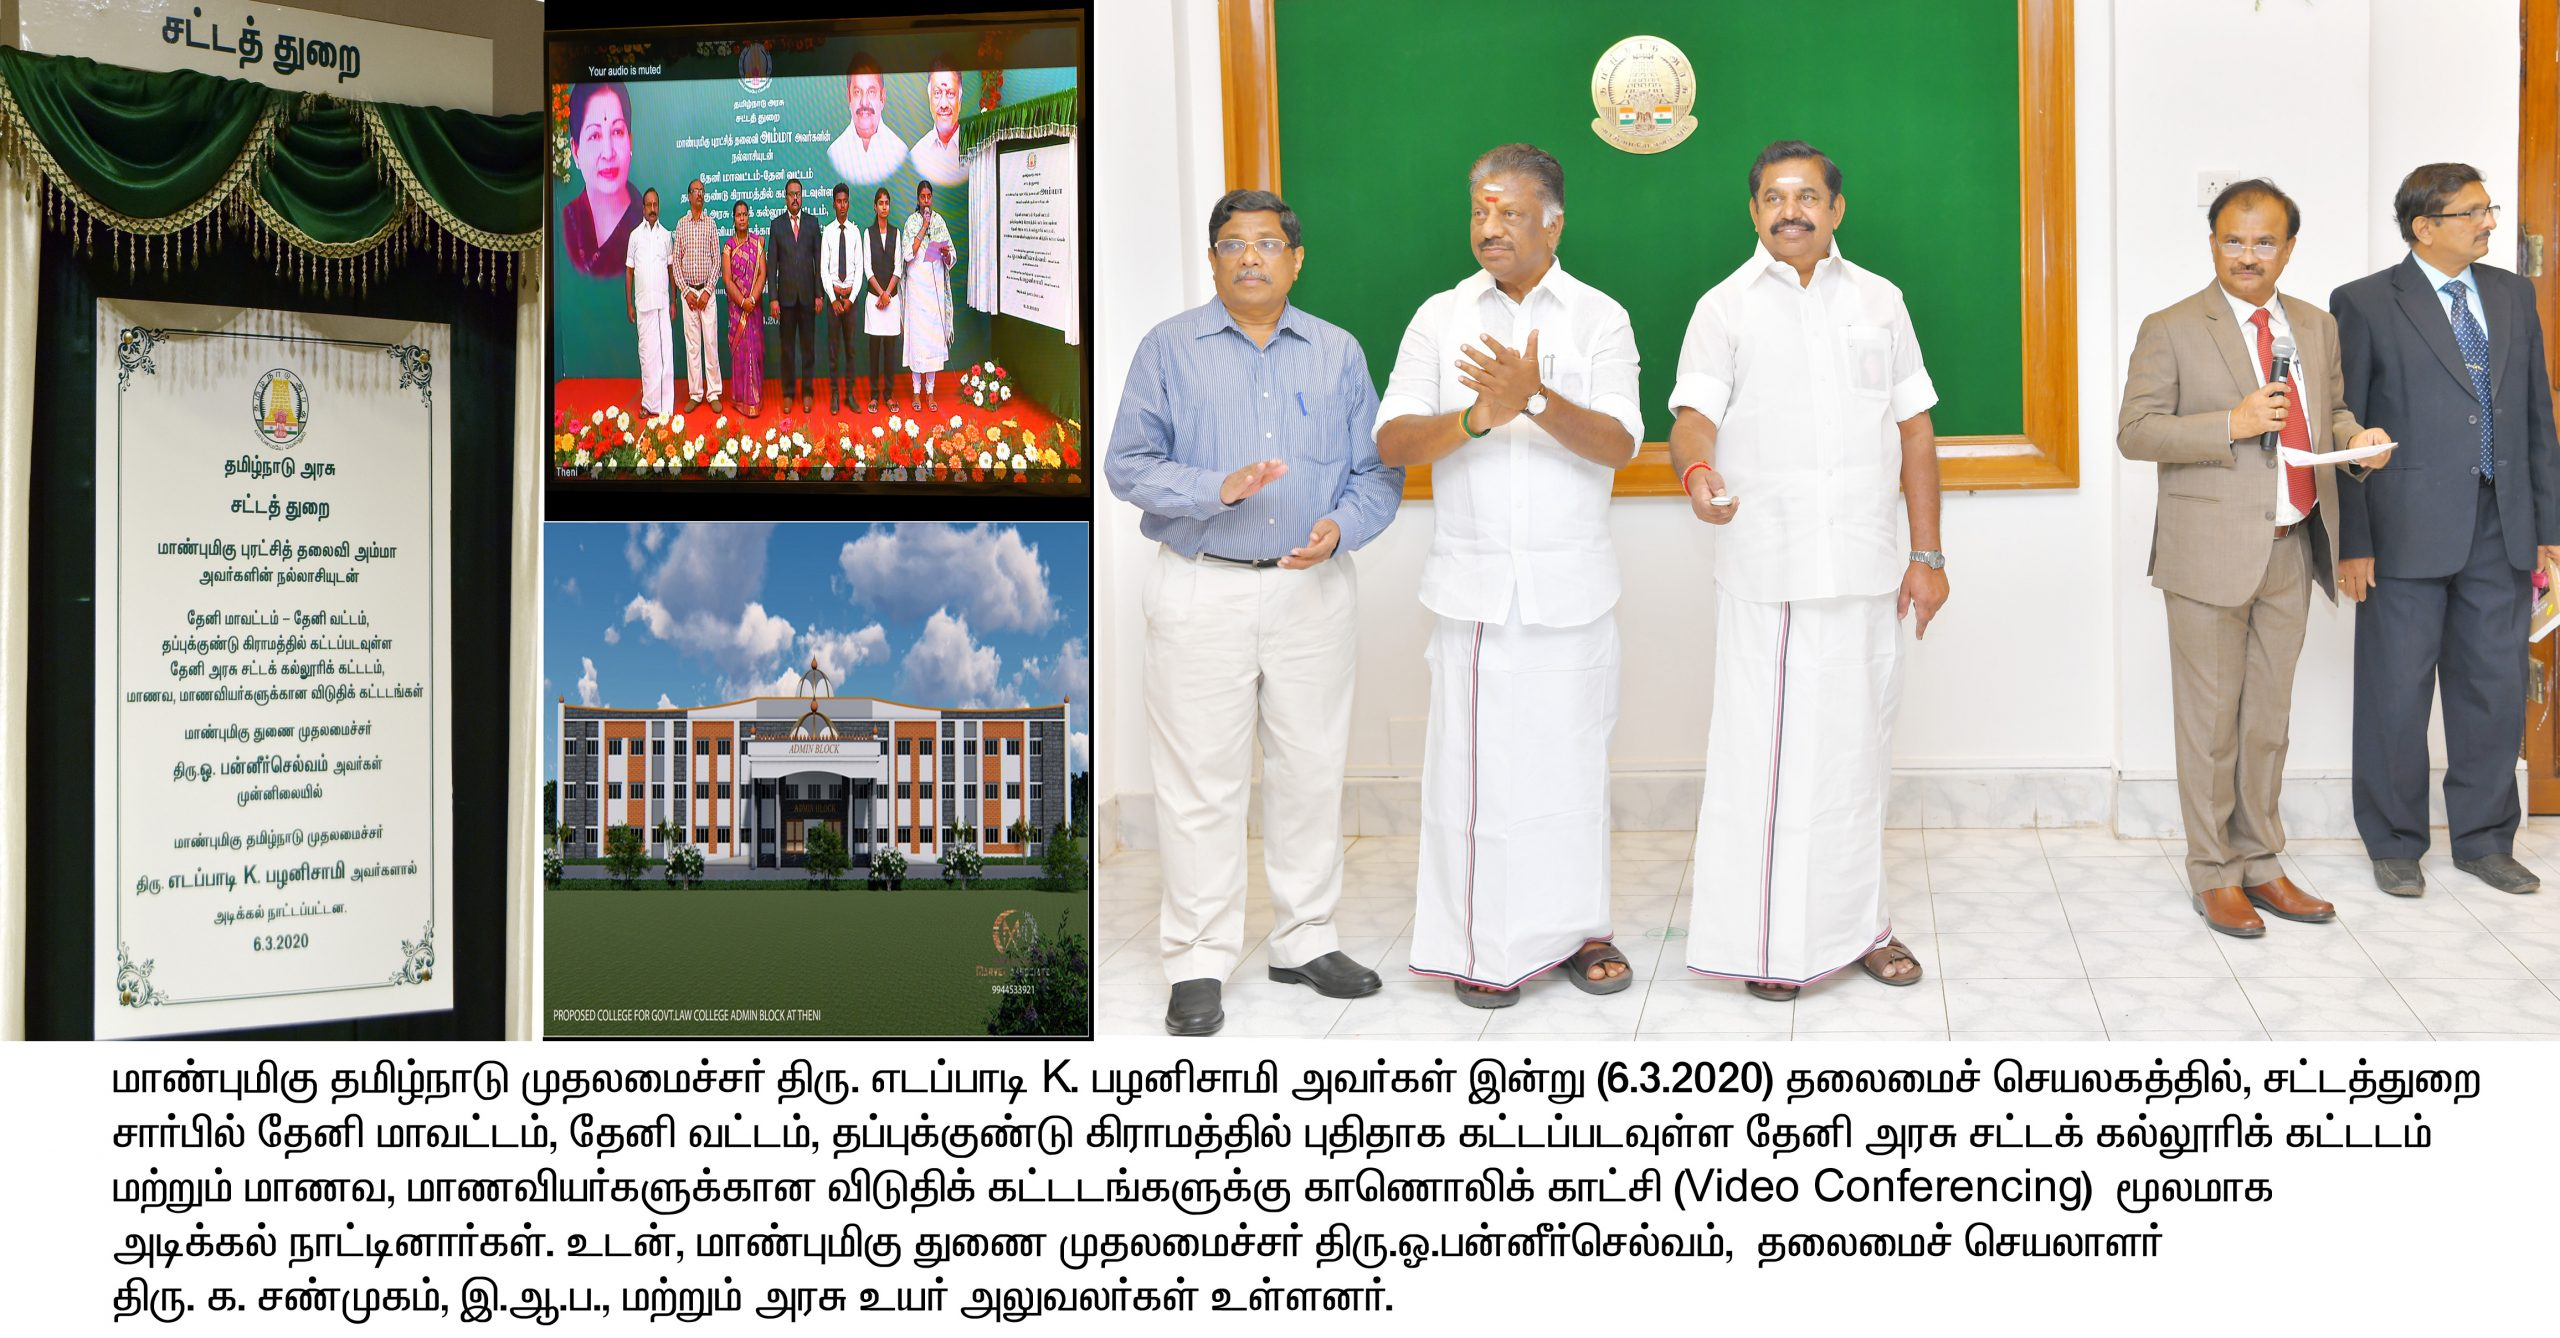 Law college inauguration